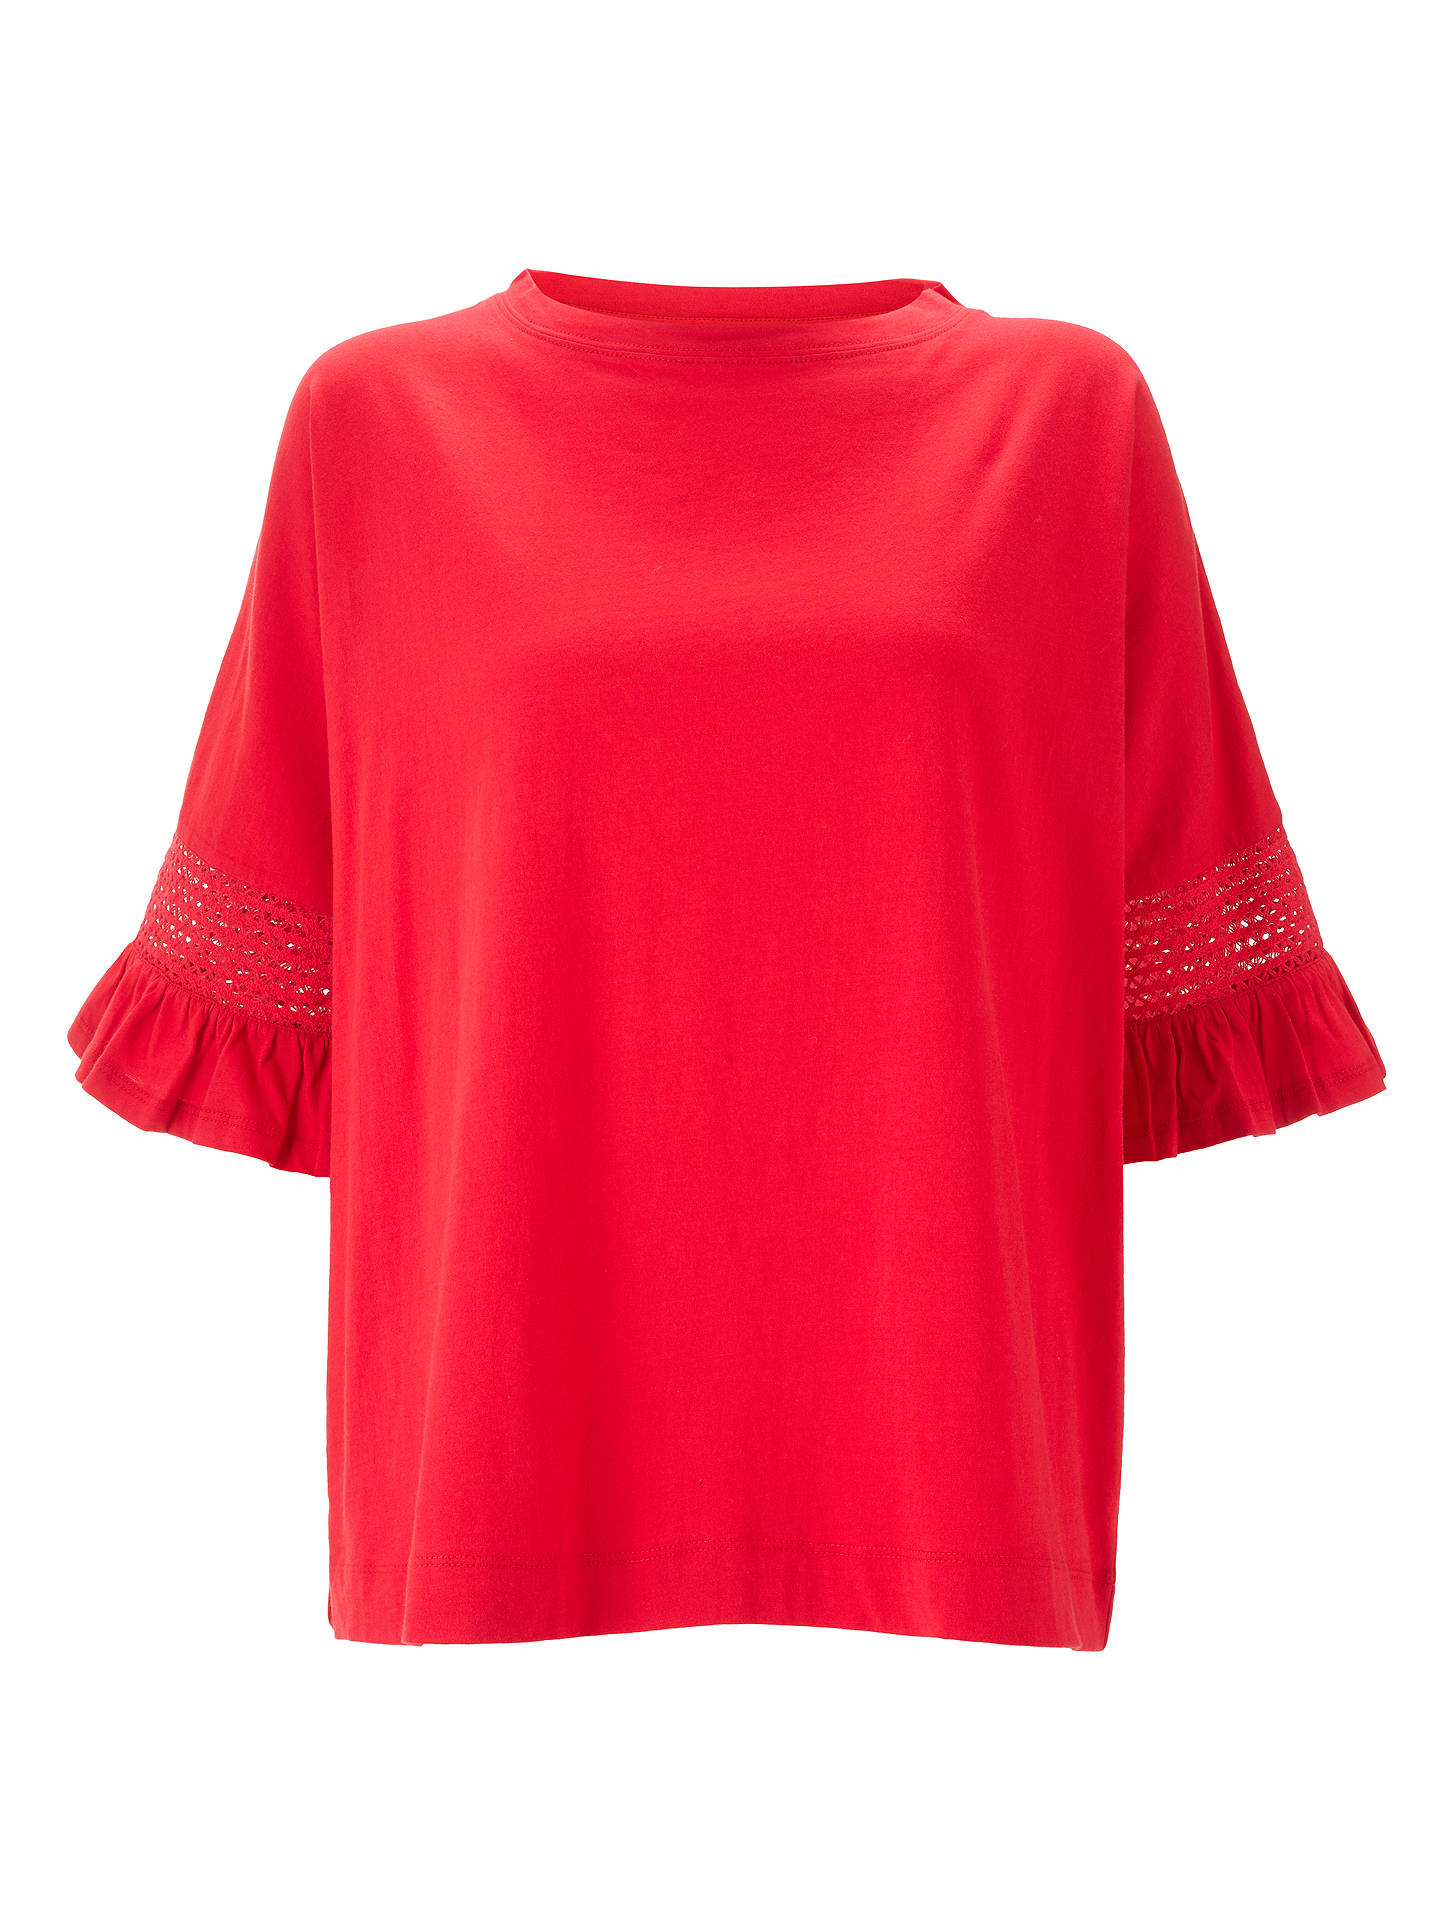 Buy AND/OR Macrame Frill Sleeve Top, Red, 8 Online at johnlewis.com